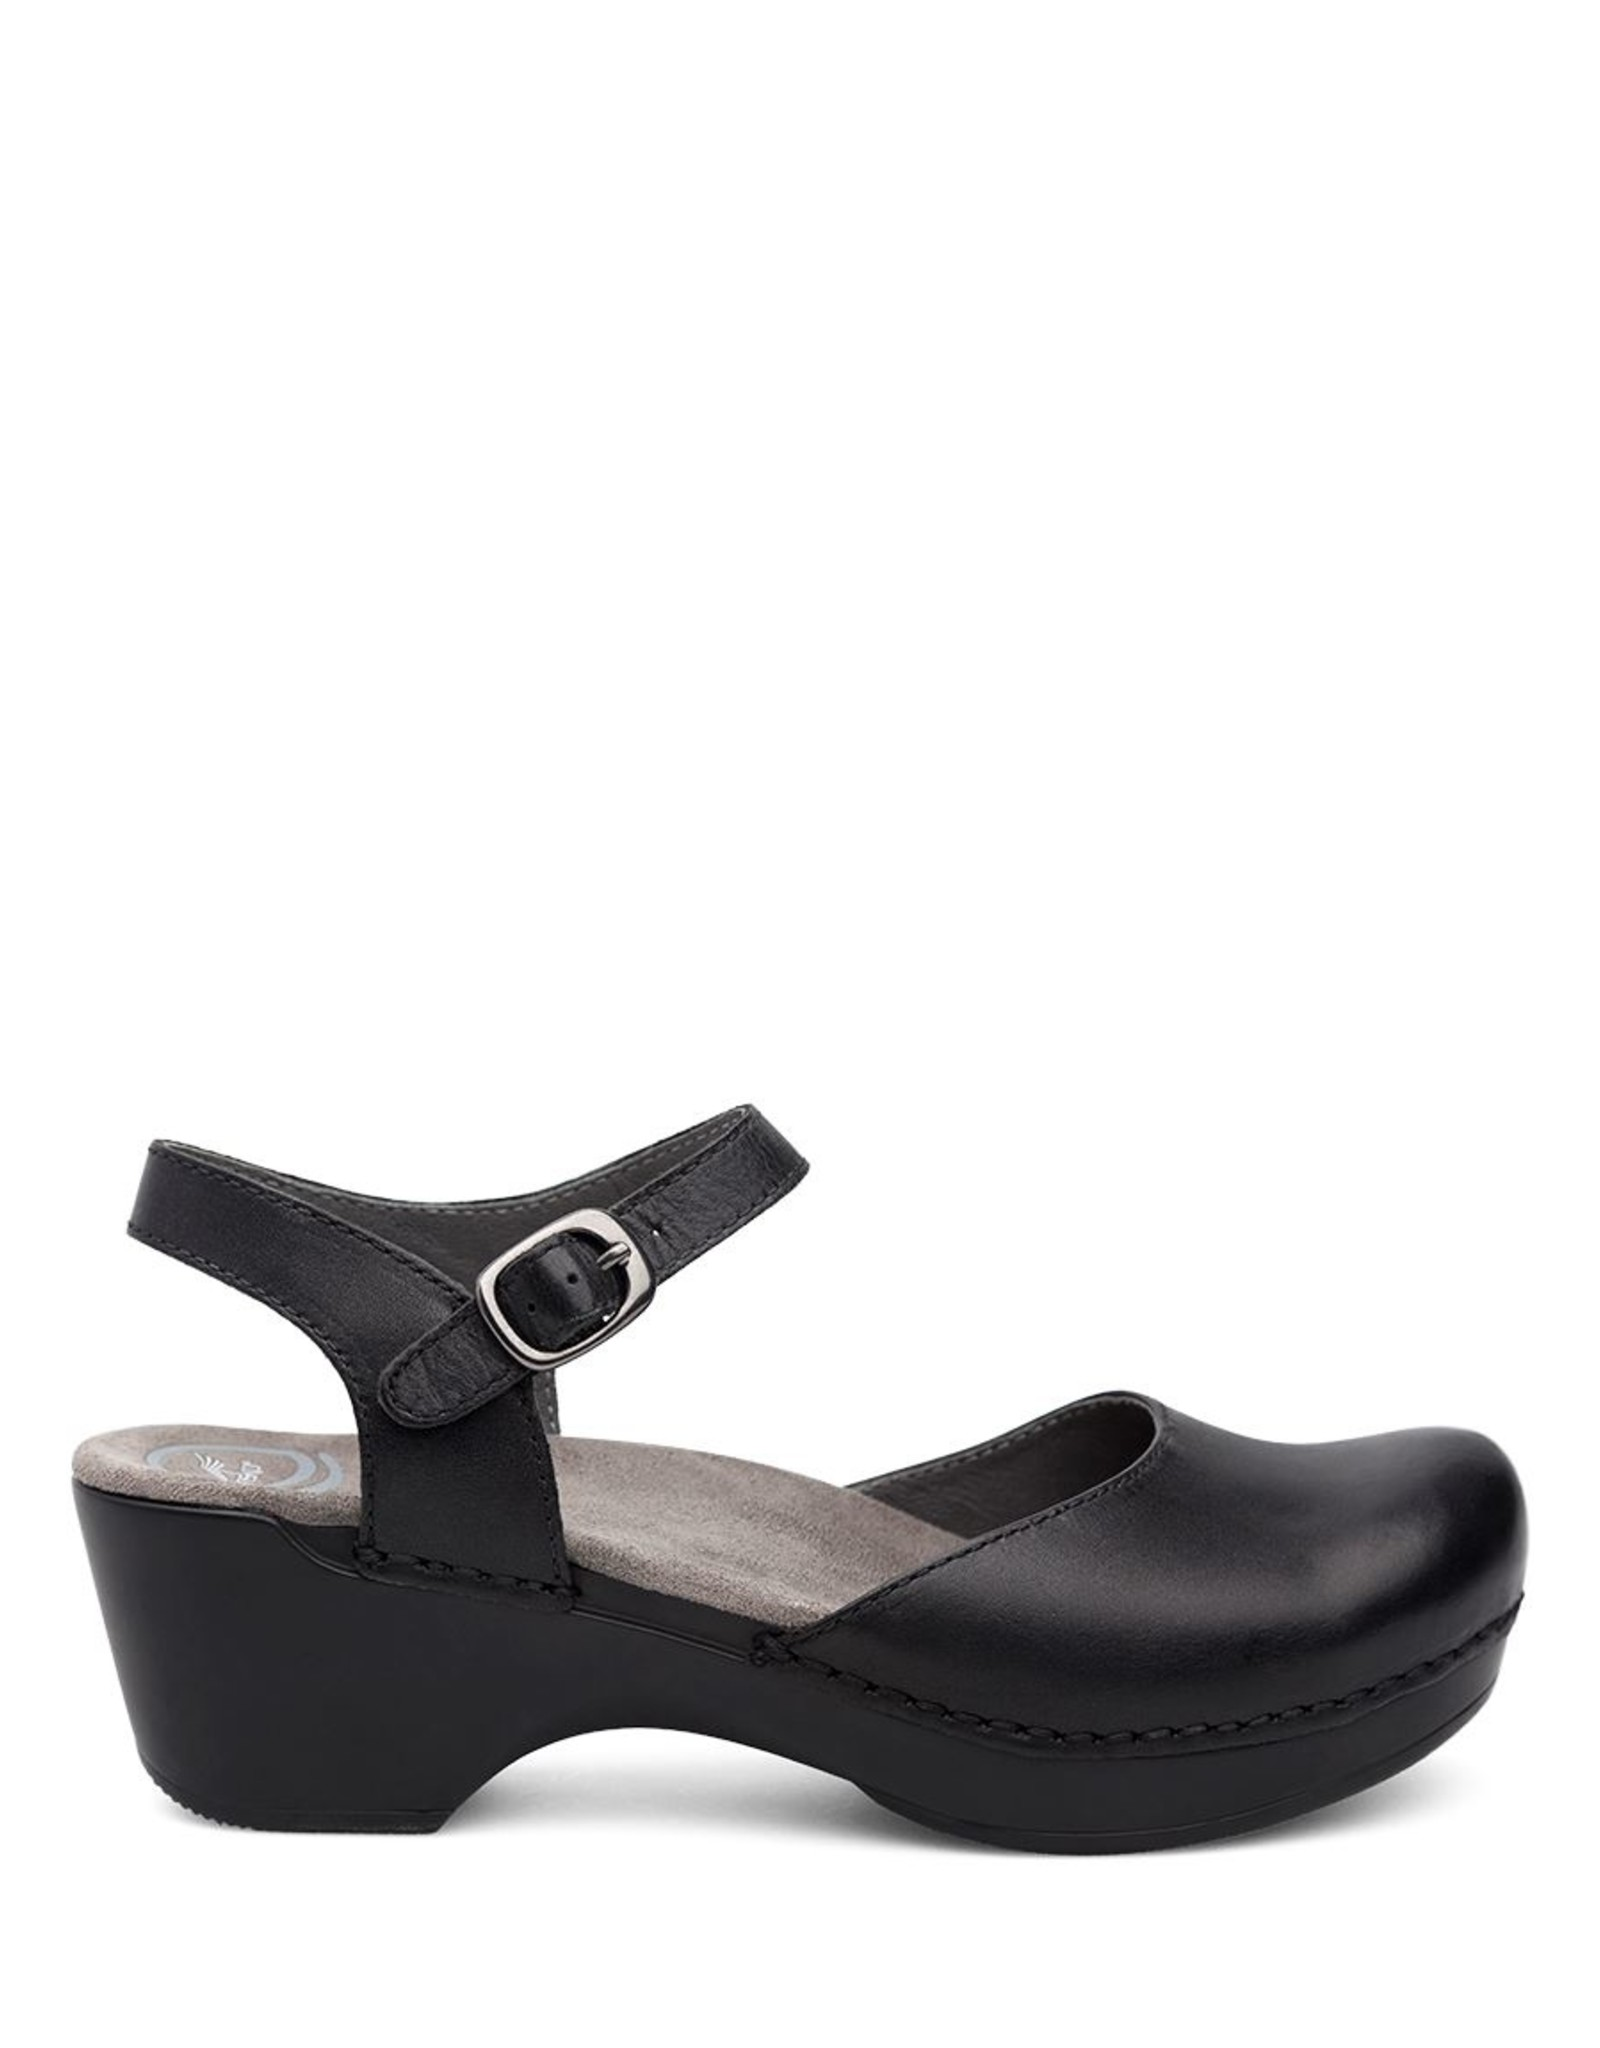 DANSKO DANSKO SAM MARY JANE-BLACK